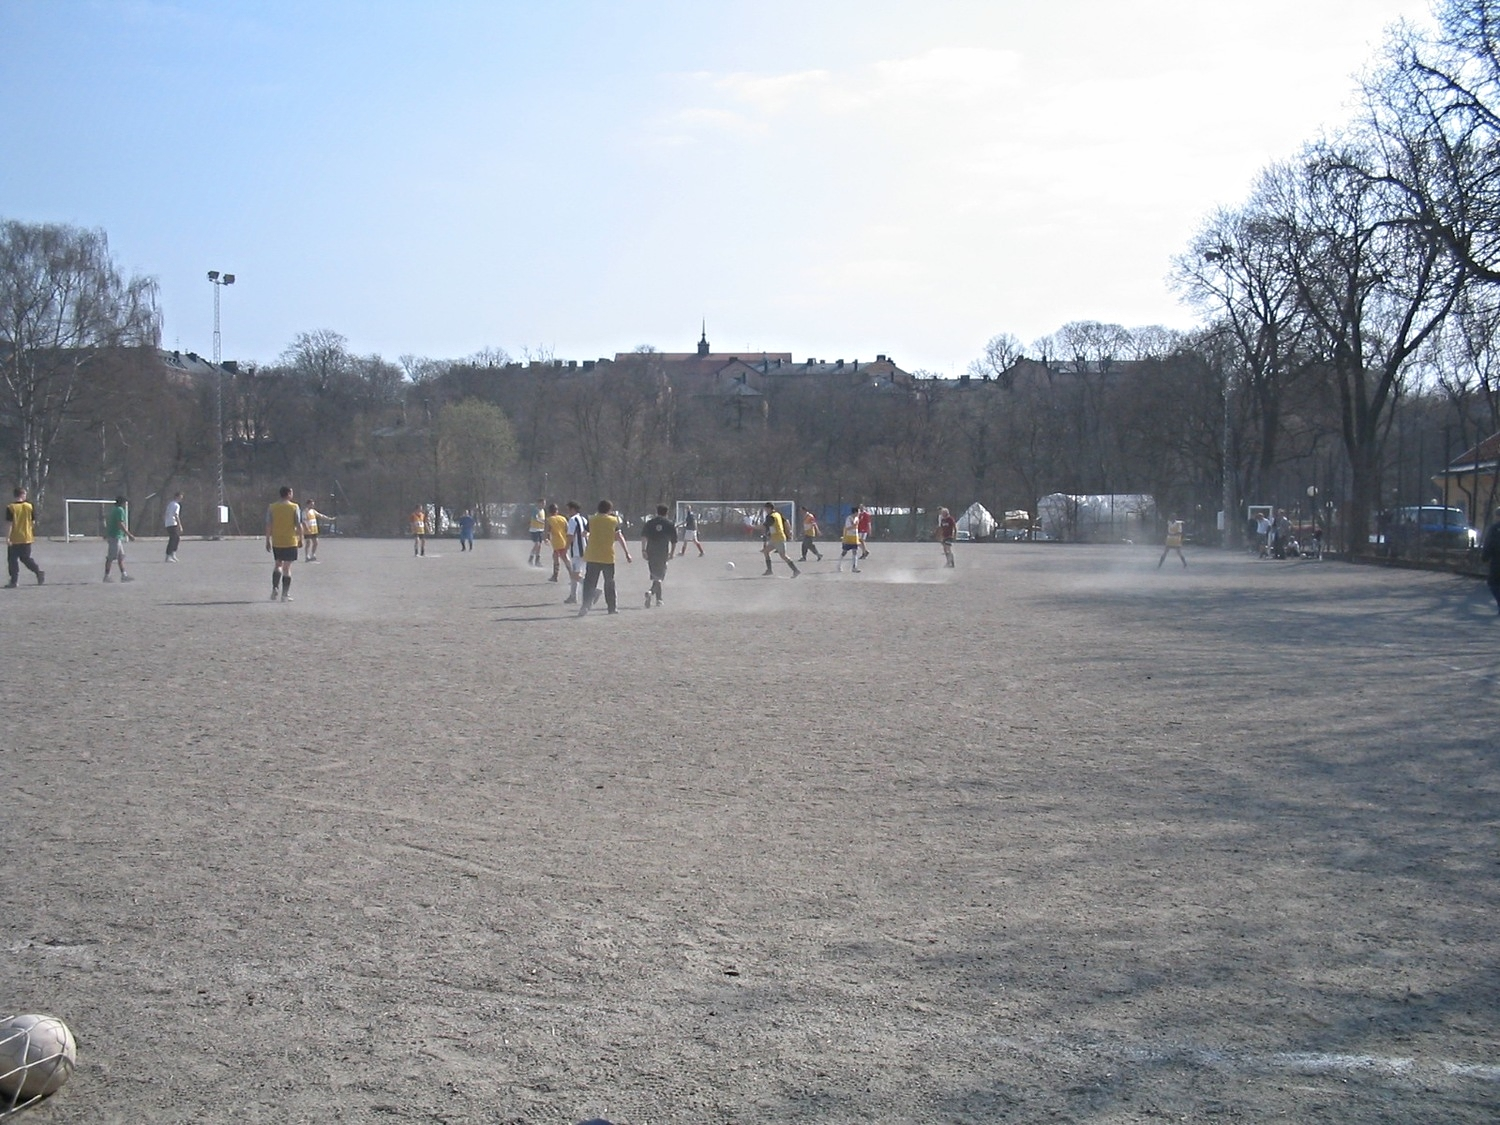 Early kick abouts on Långholem. Many players turned up to join in. Good vibes. Photo taken 17th April, 2004.